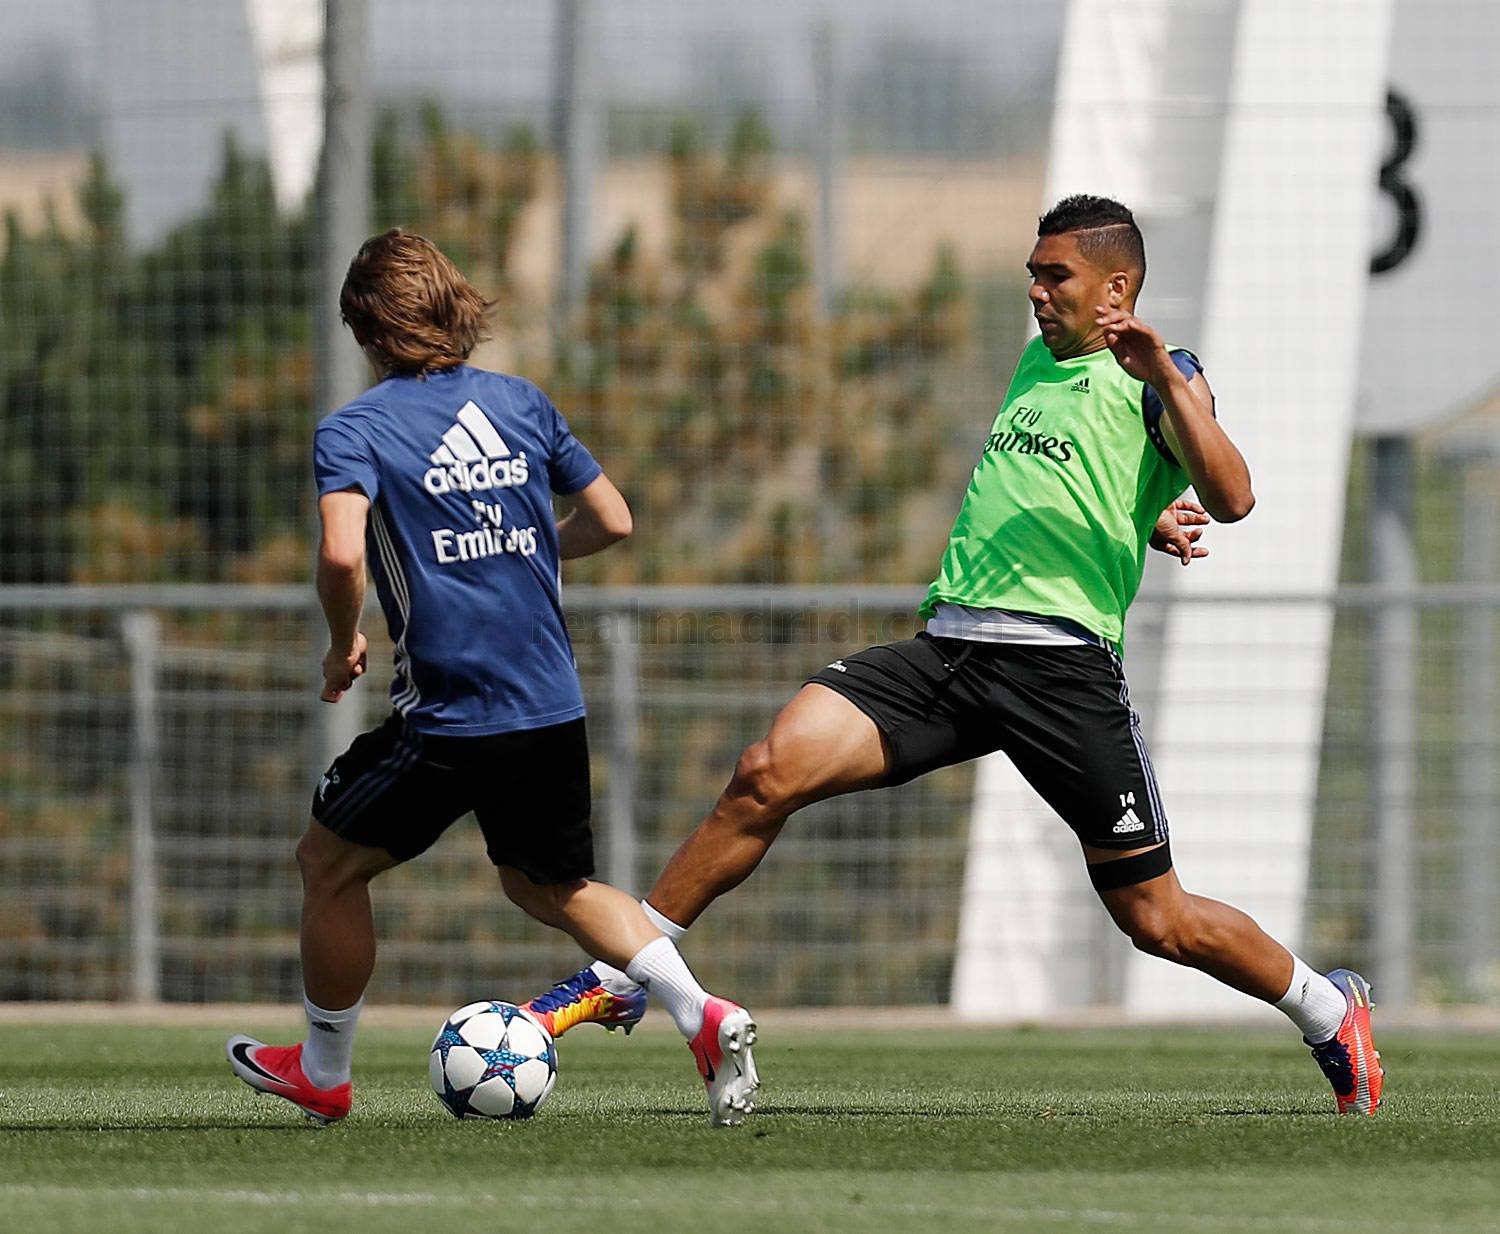 Real Madrid - Entrenamiento del Real Madrid - 27-05-2017